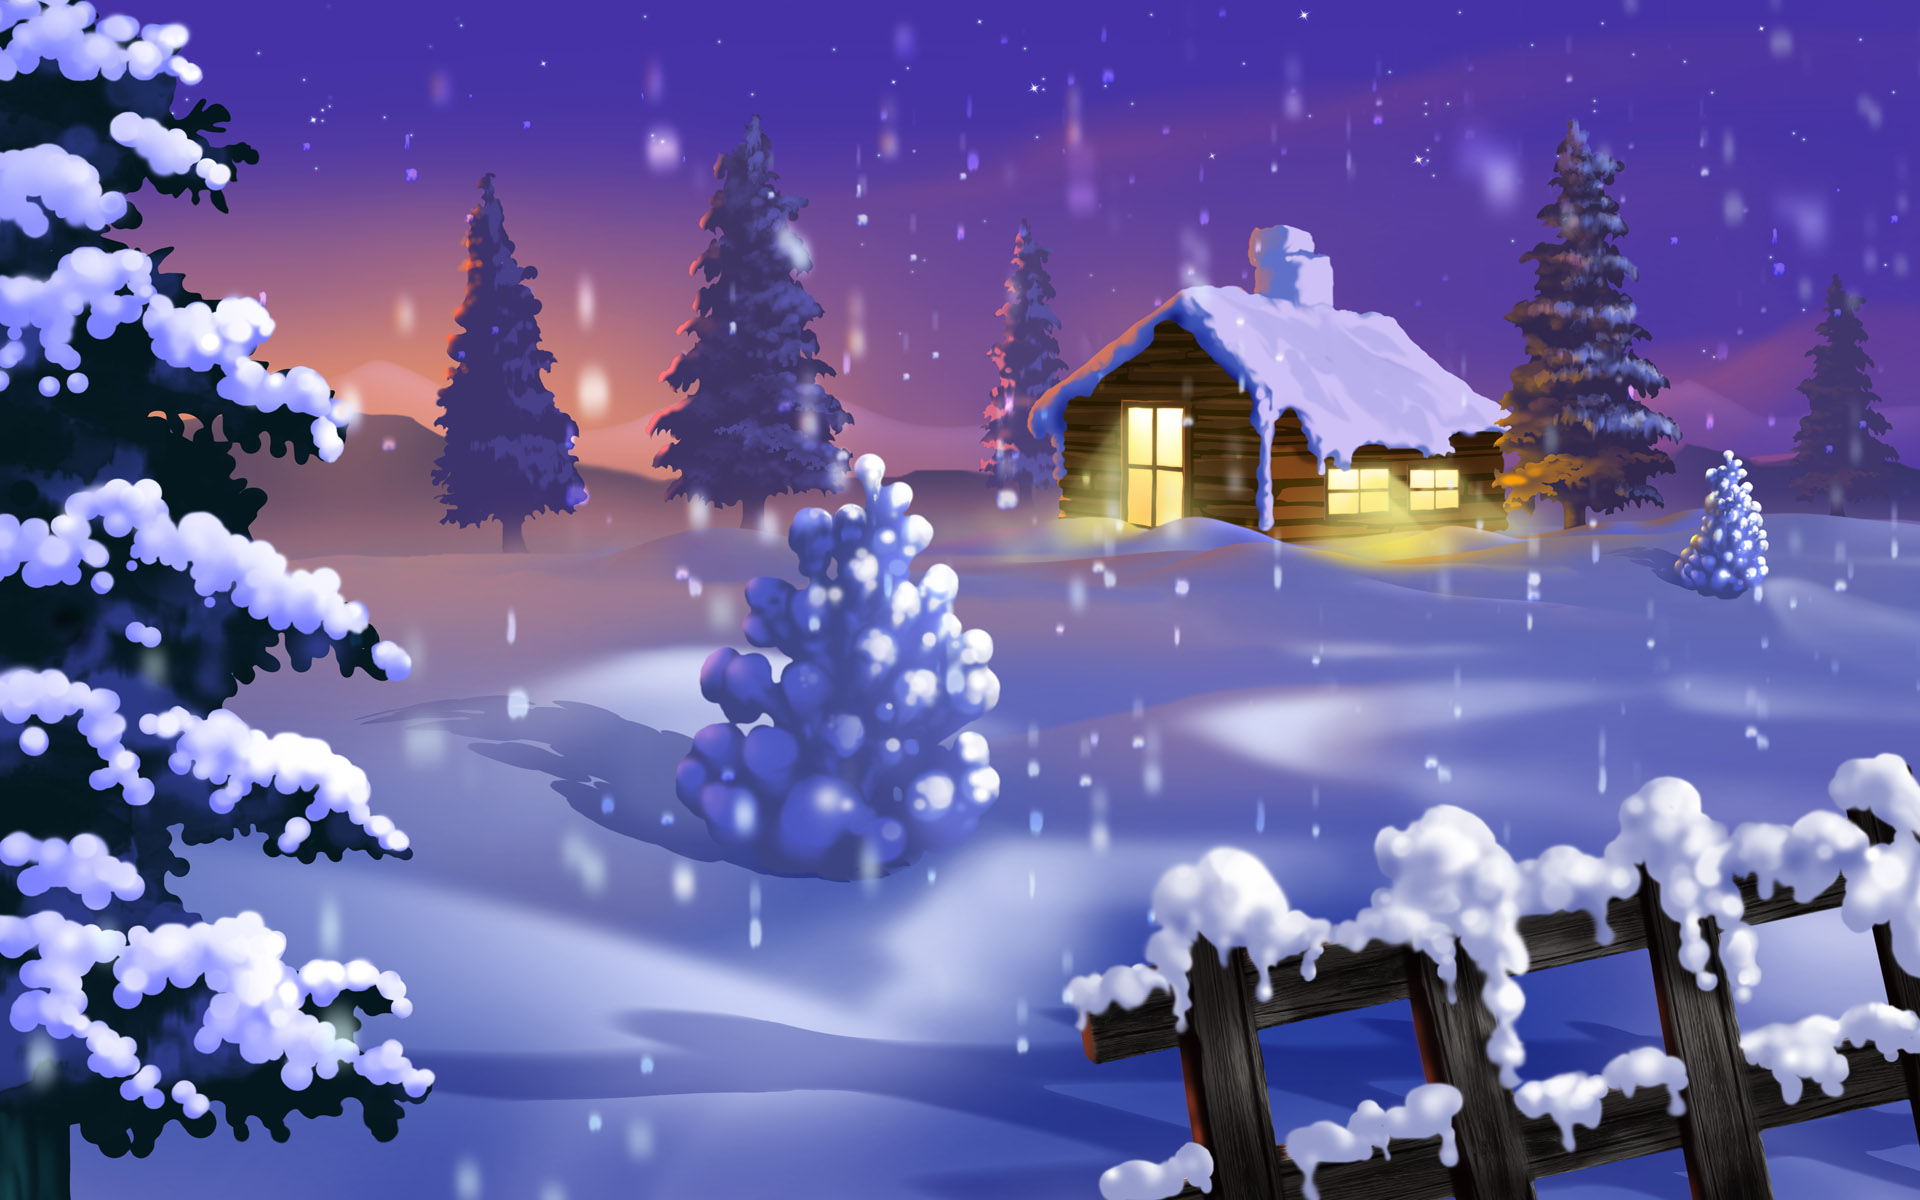 URL httpdesktopbackgrounds1comchristmas winter wallpapers 1920x1200